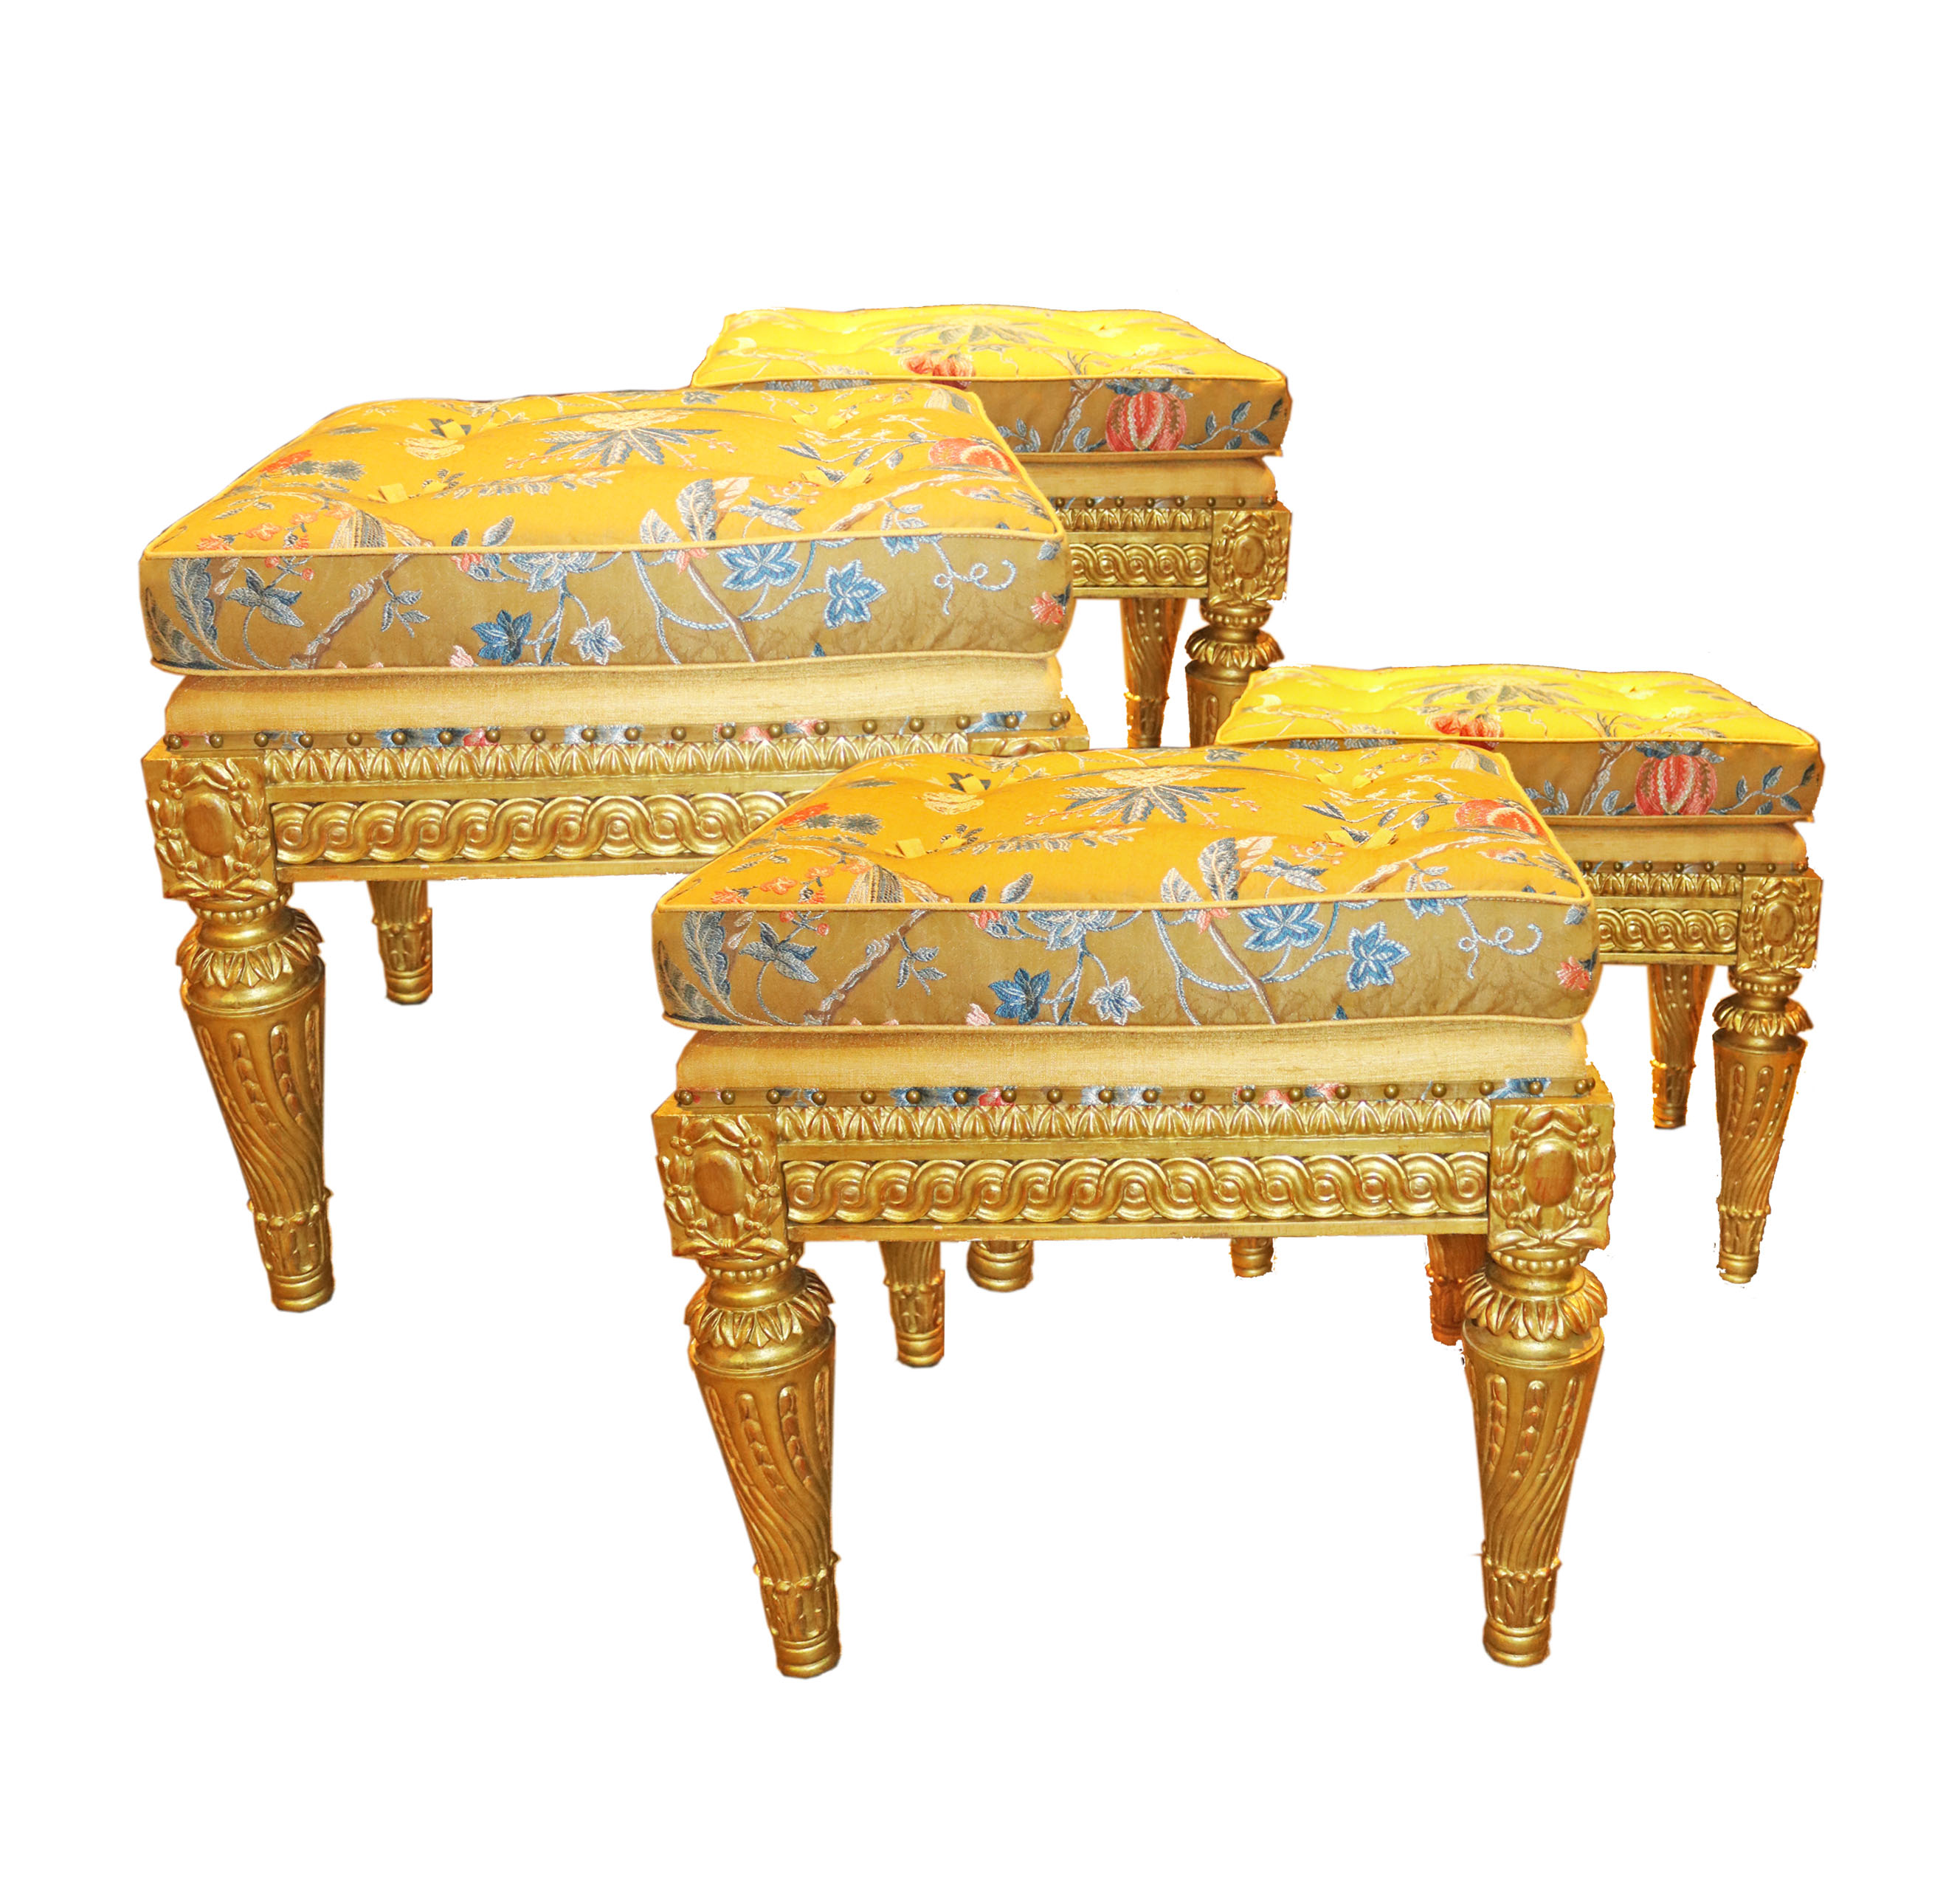 A Set of Four Elegant 19th C. Italian Louis XVI Giltwood Benches No. 4779